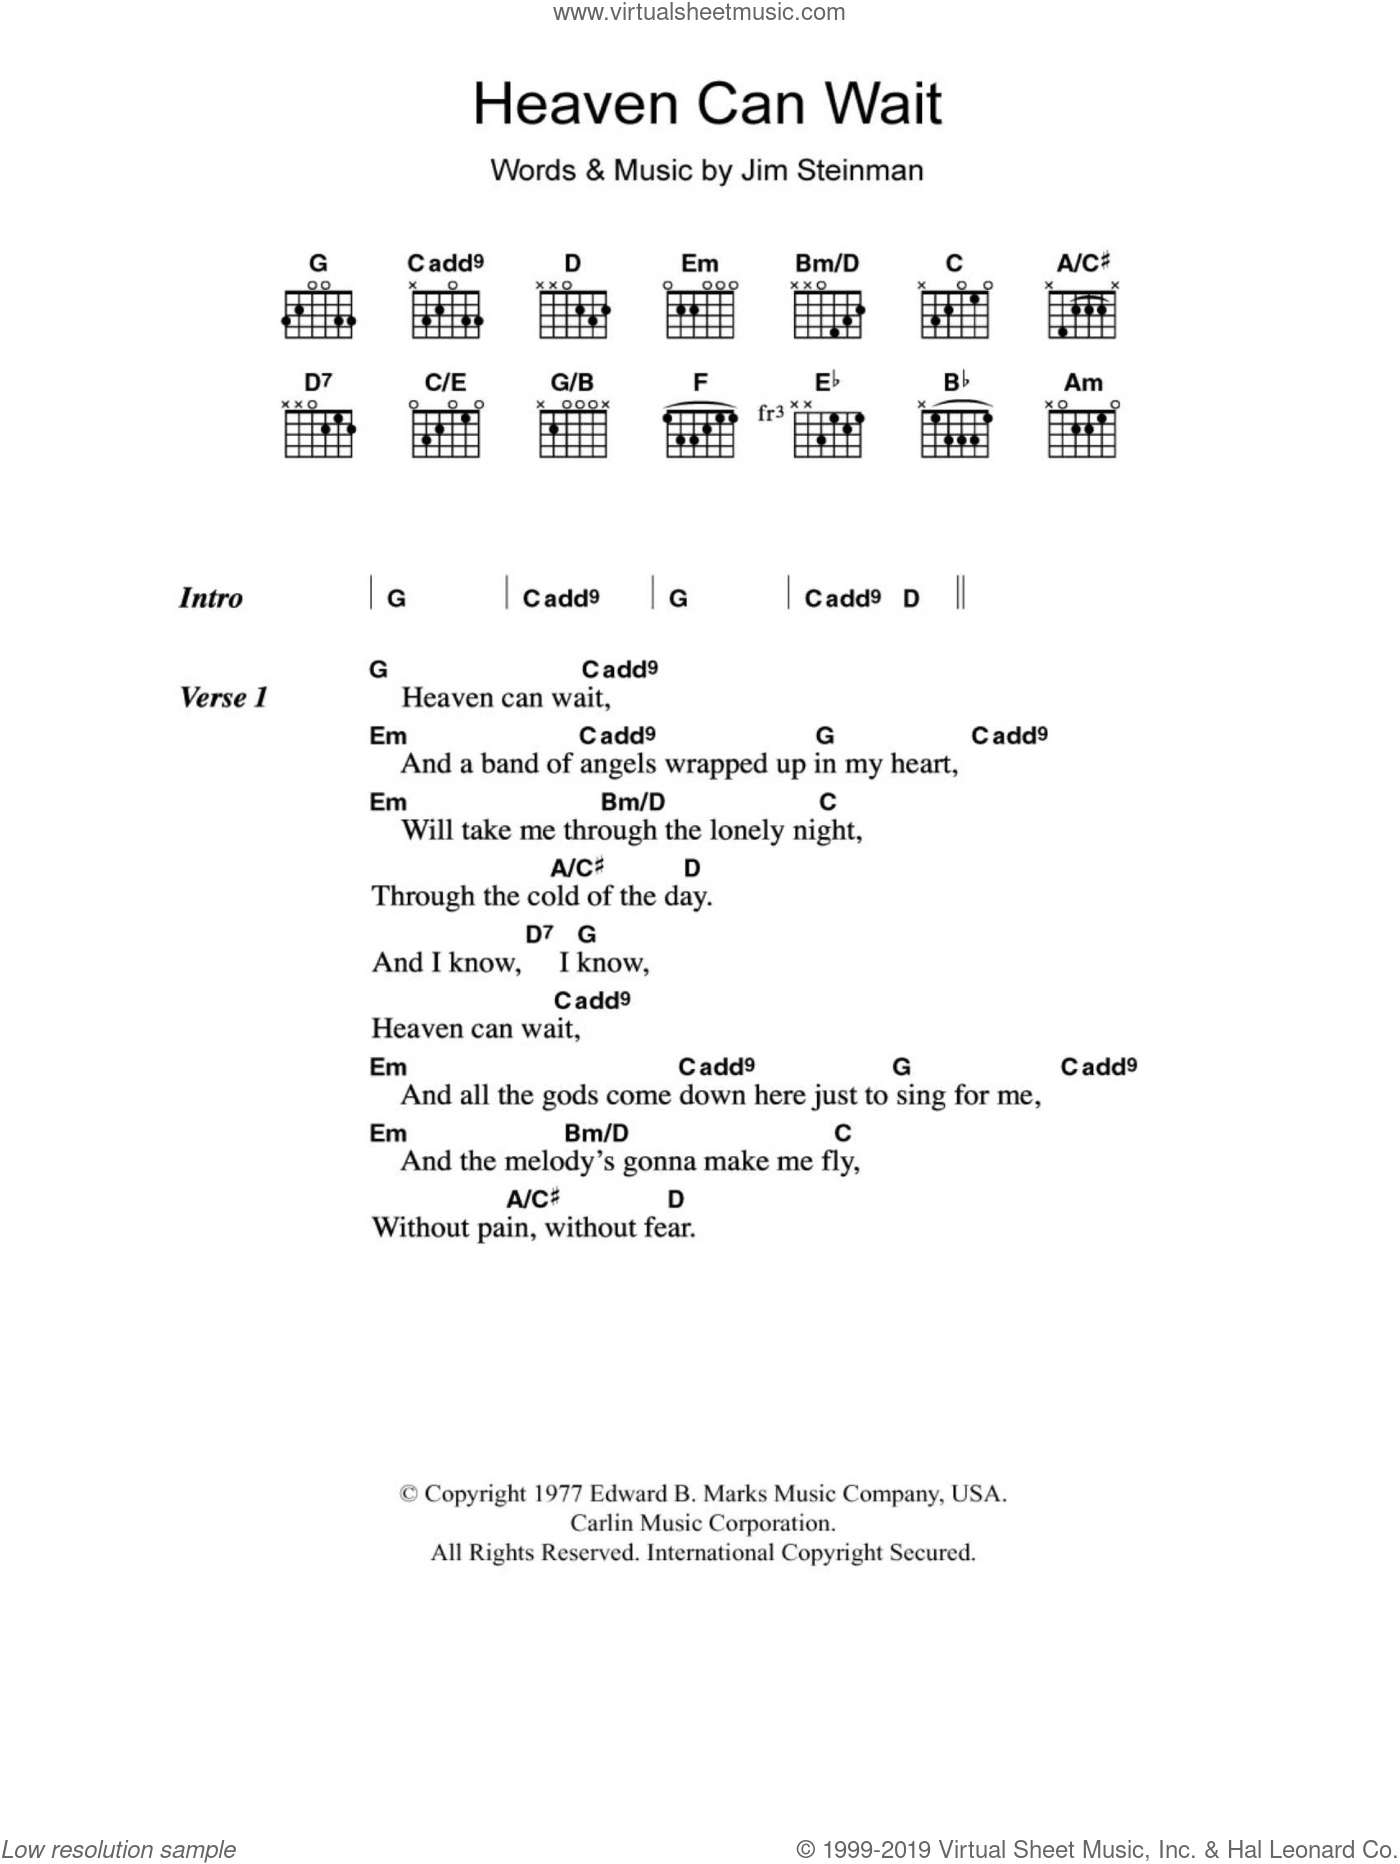 Heaven Can Wait sheet music for guitar (chords) by Jim Steinman. Score Image Preview.